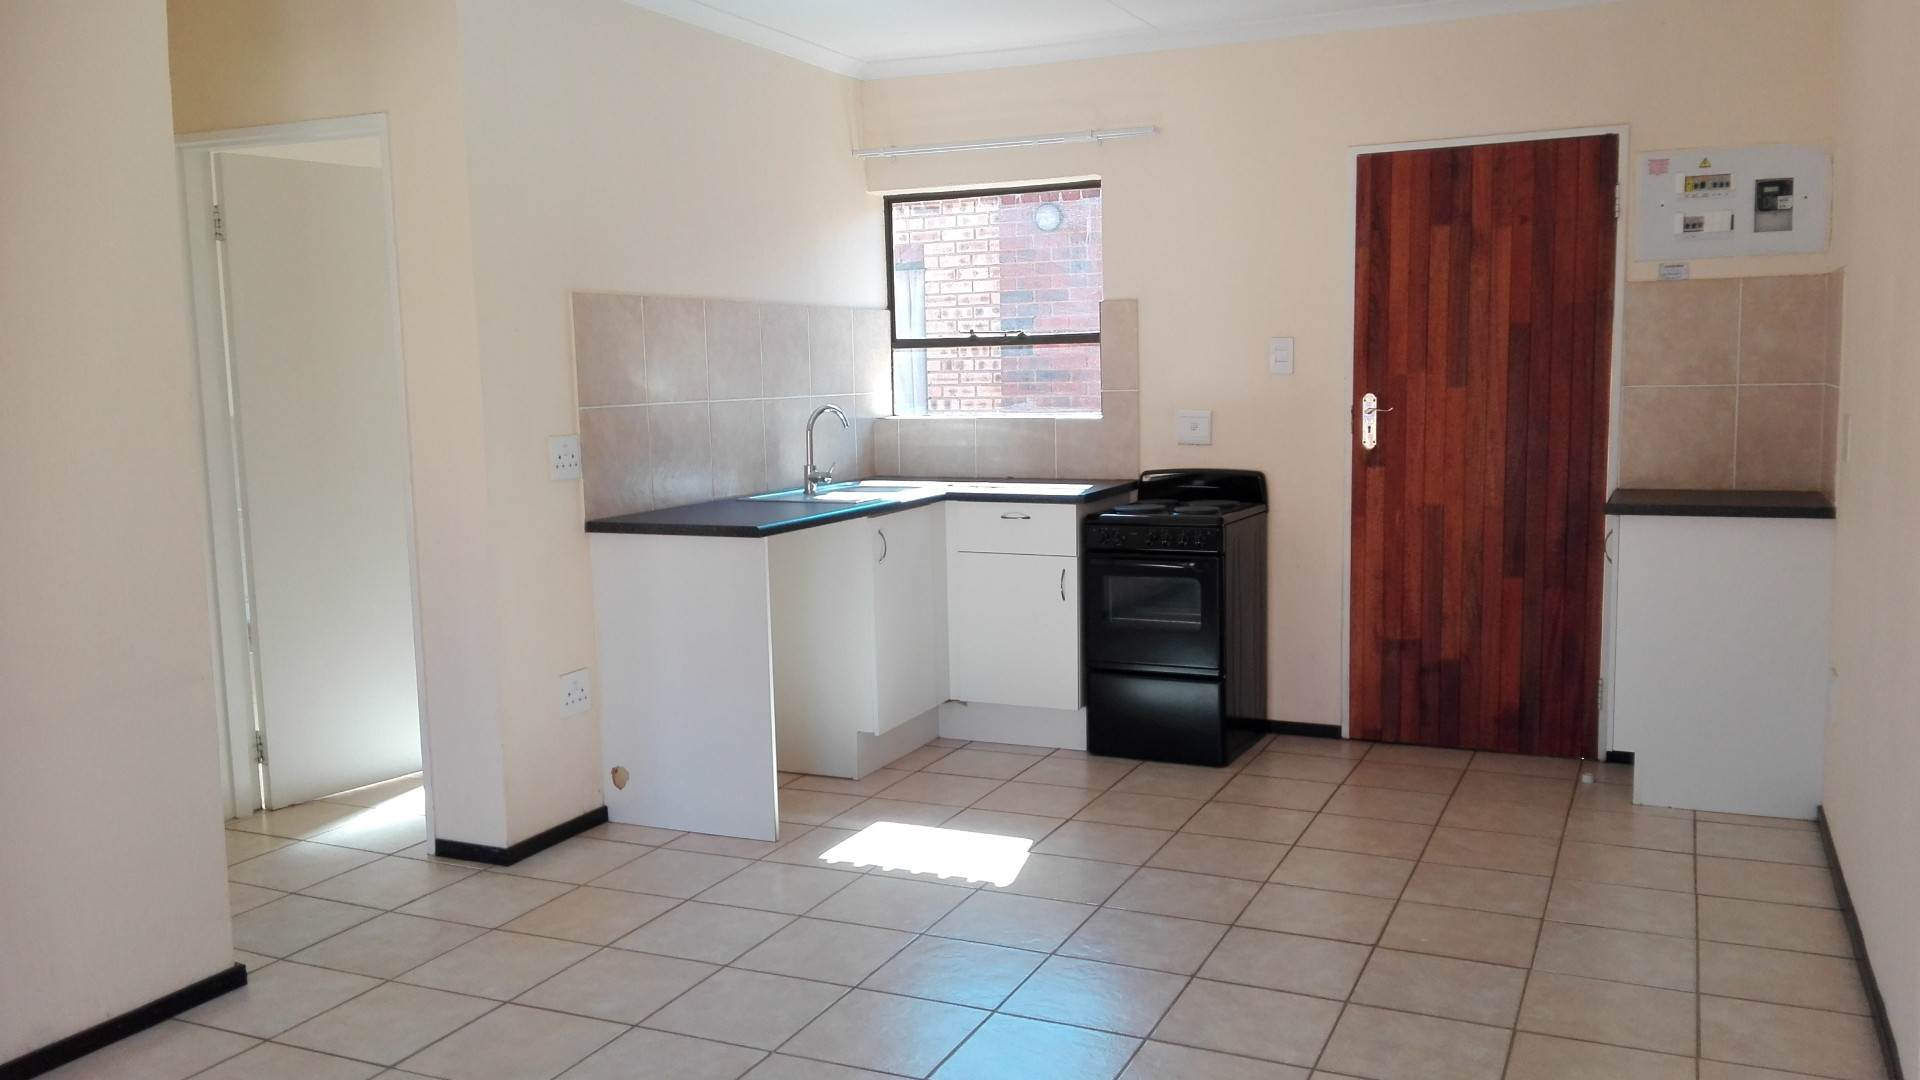 2 Bedroom Townhouse in Protea Glen, Soweto Rental Monthly for R 4,790  #1152760